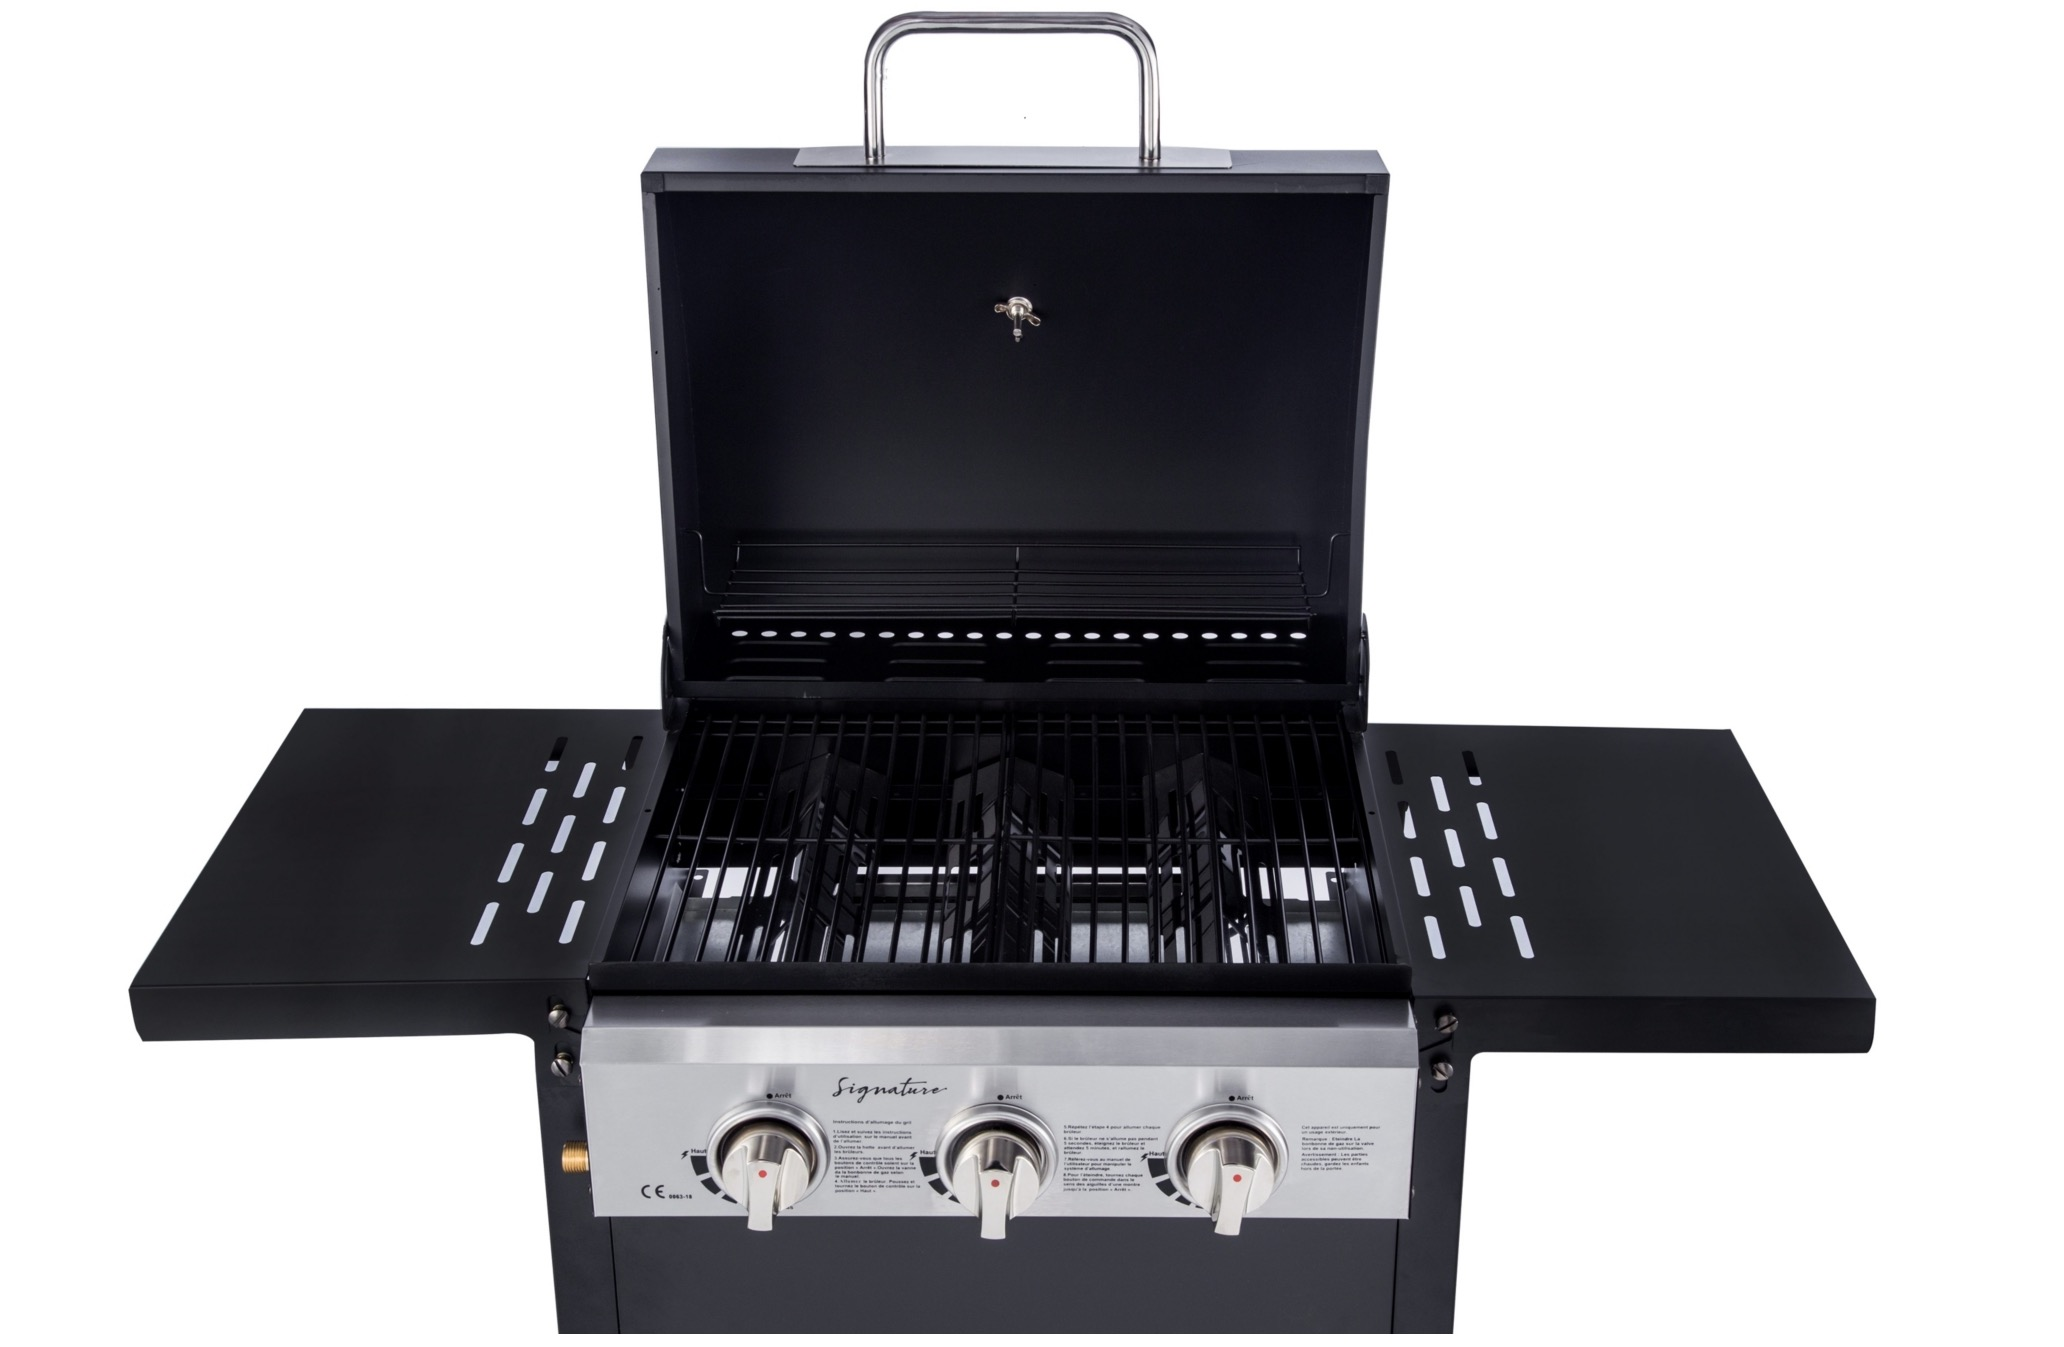 nettoyer barbecue gaz stunning awesome black gauche with nettoyer barbecue gaz with nettoyer. Black Bedroom Furniture Sets. Home Design Ideas